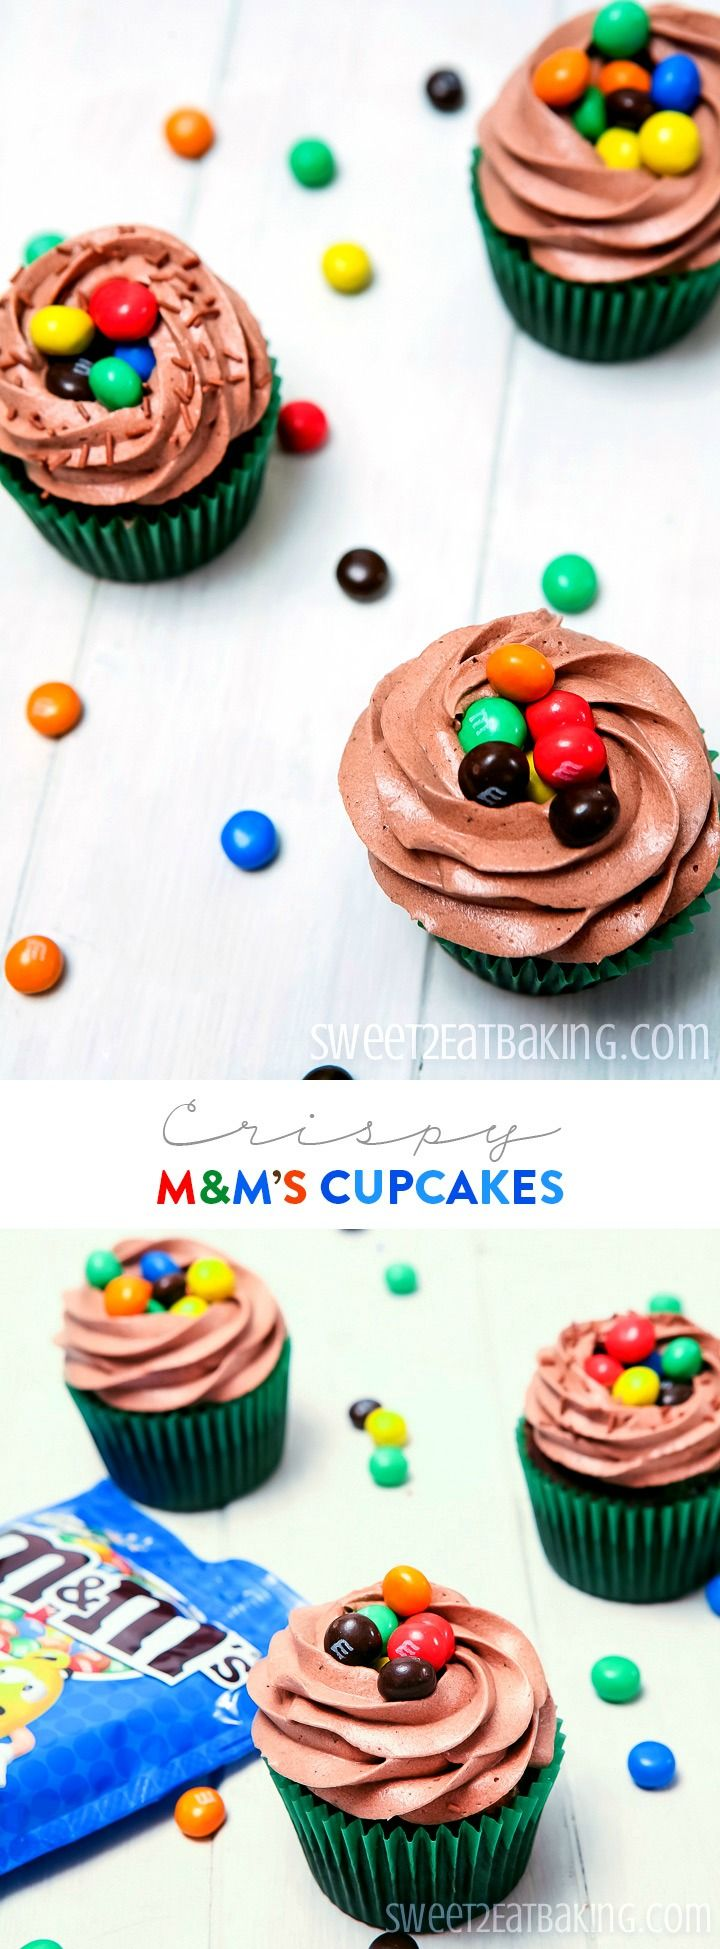 Crispy M&M's Cupcakes Recipe by Sweet2EatBaking.com. These cupcakes have M&Ms Crispy baked right in the batter, with a generous serving on top of each cupcake, too.